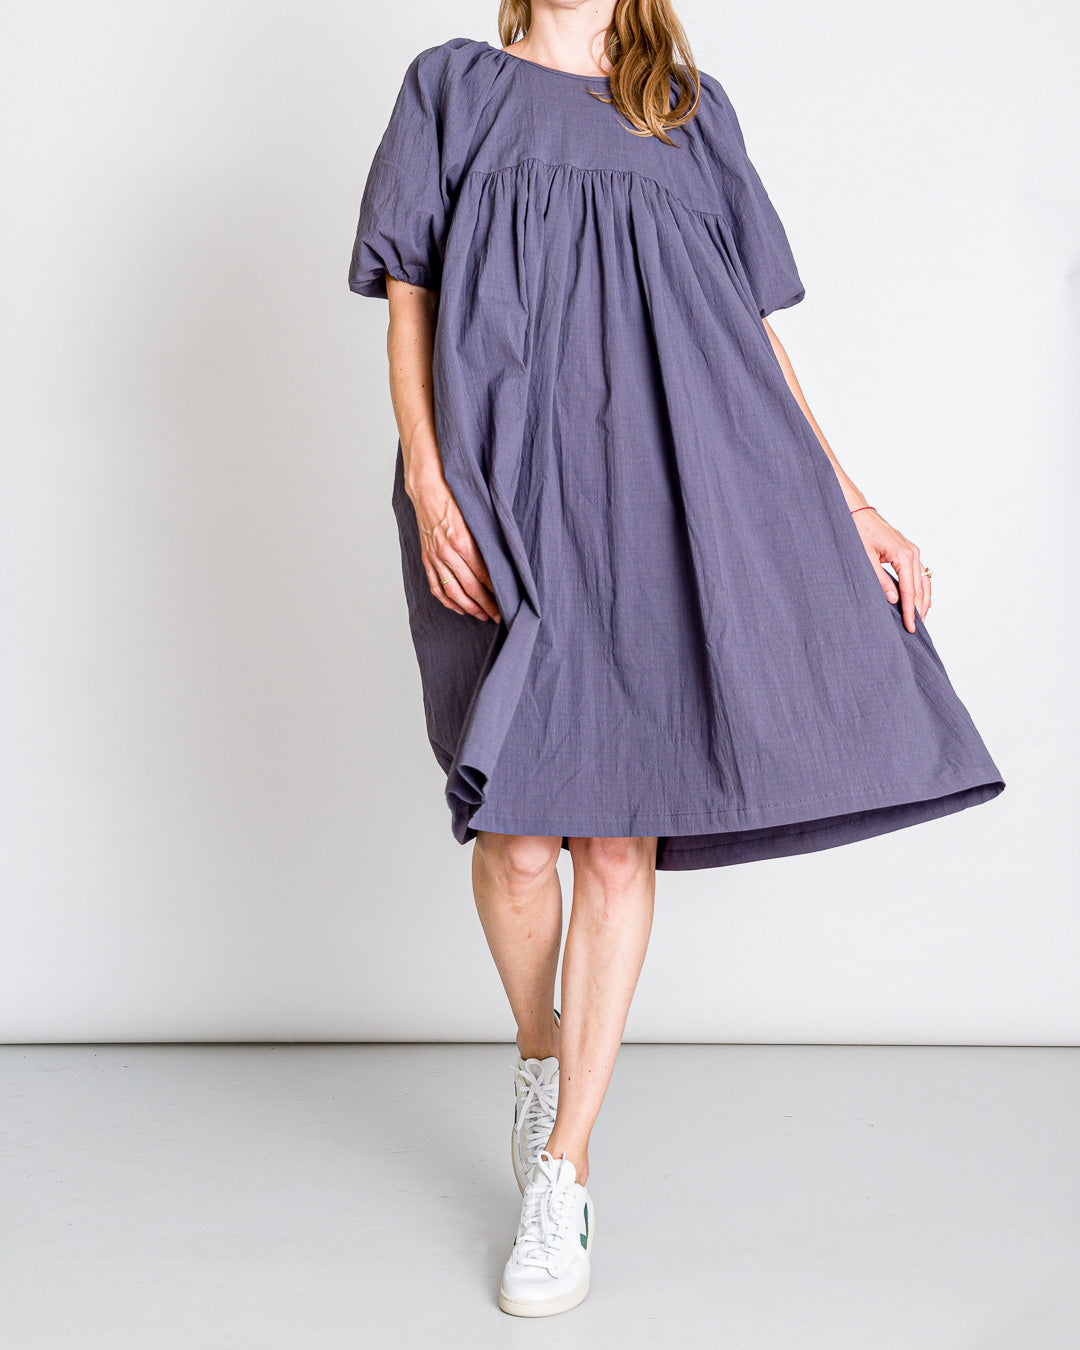 OFFON CLOTHING // Boho Kleid Charcoal Grey Cotton